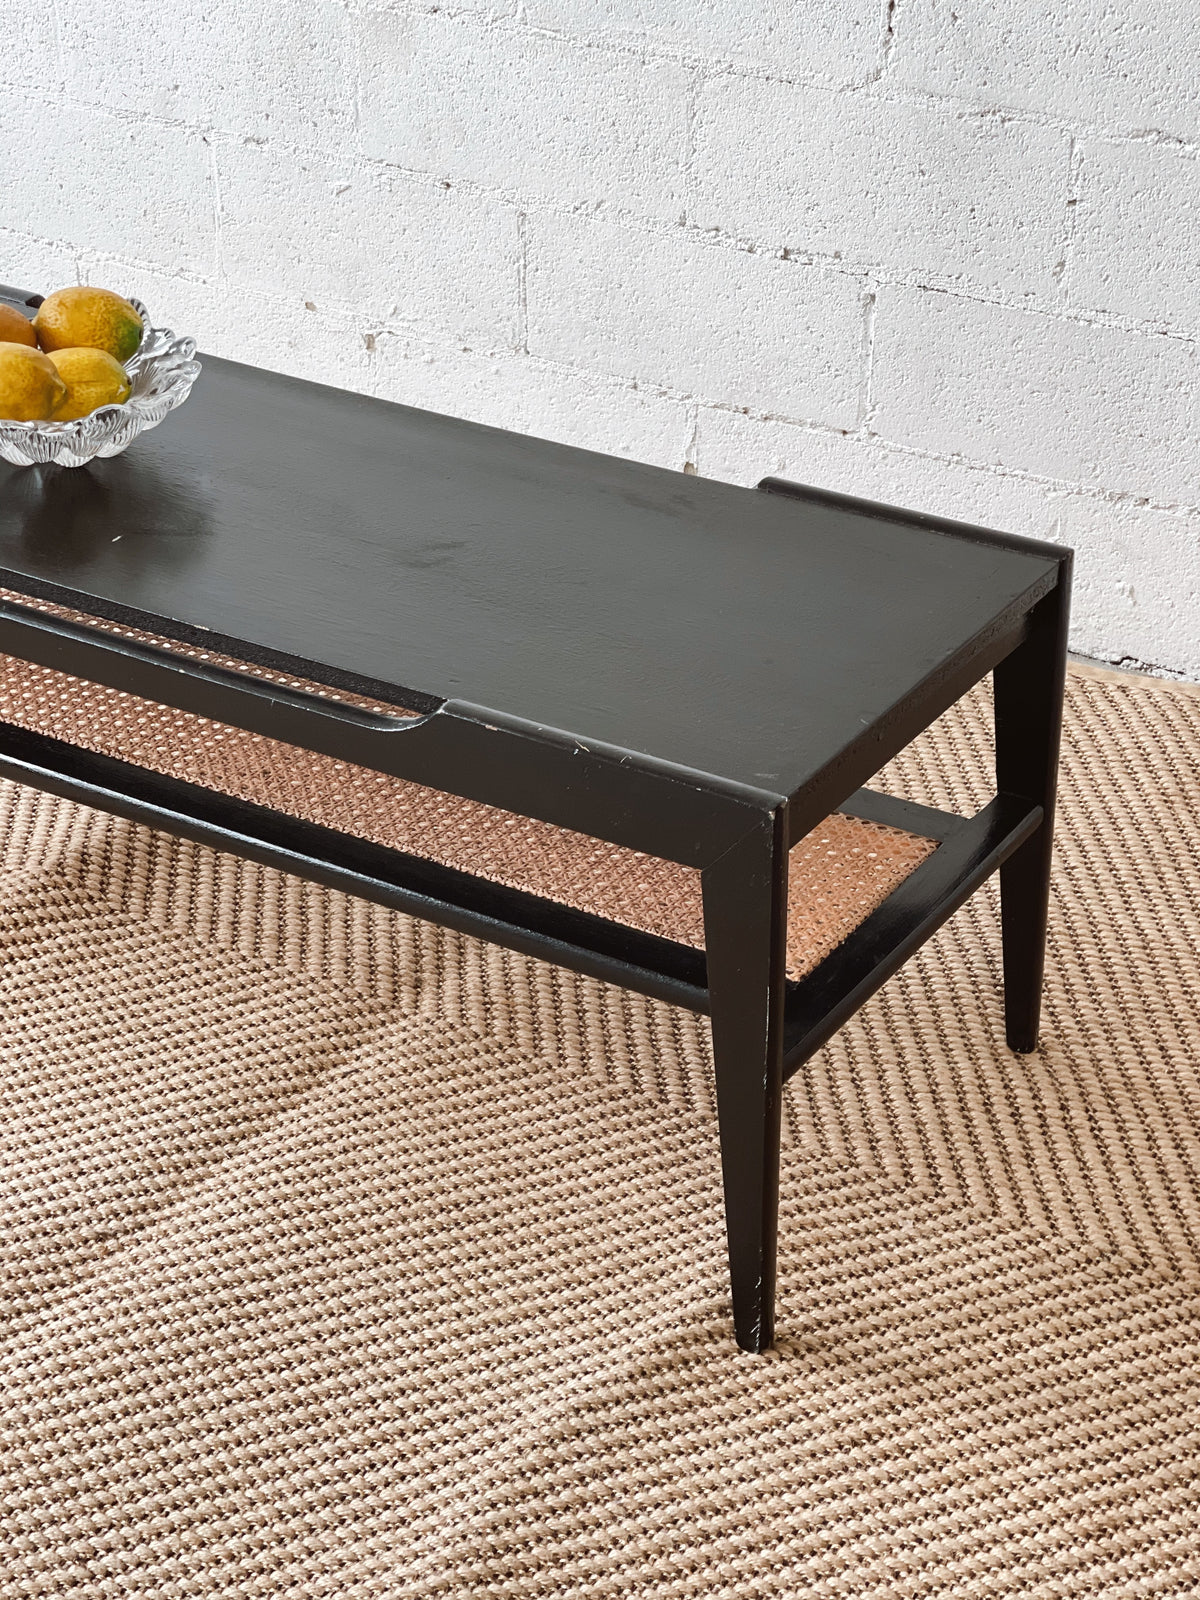 Vintage Wooden and Rattan Coffee Table